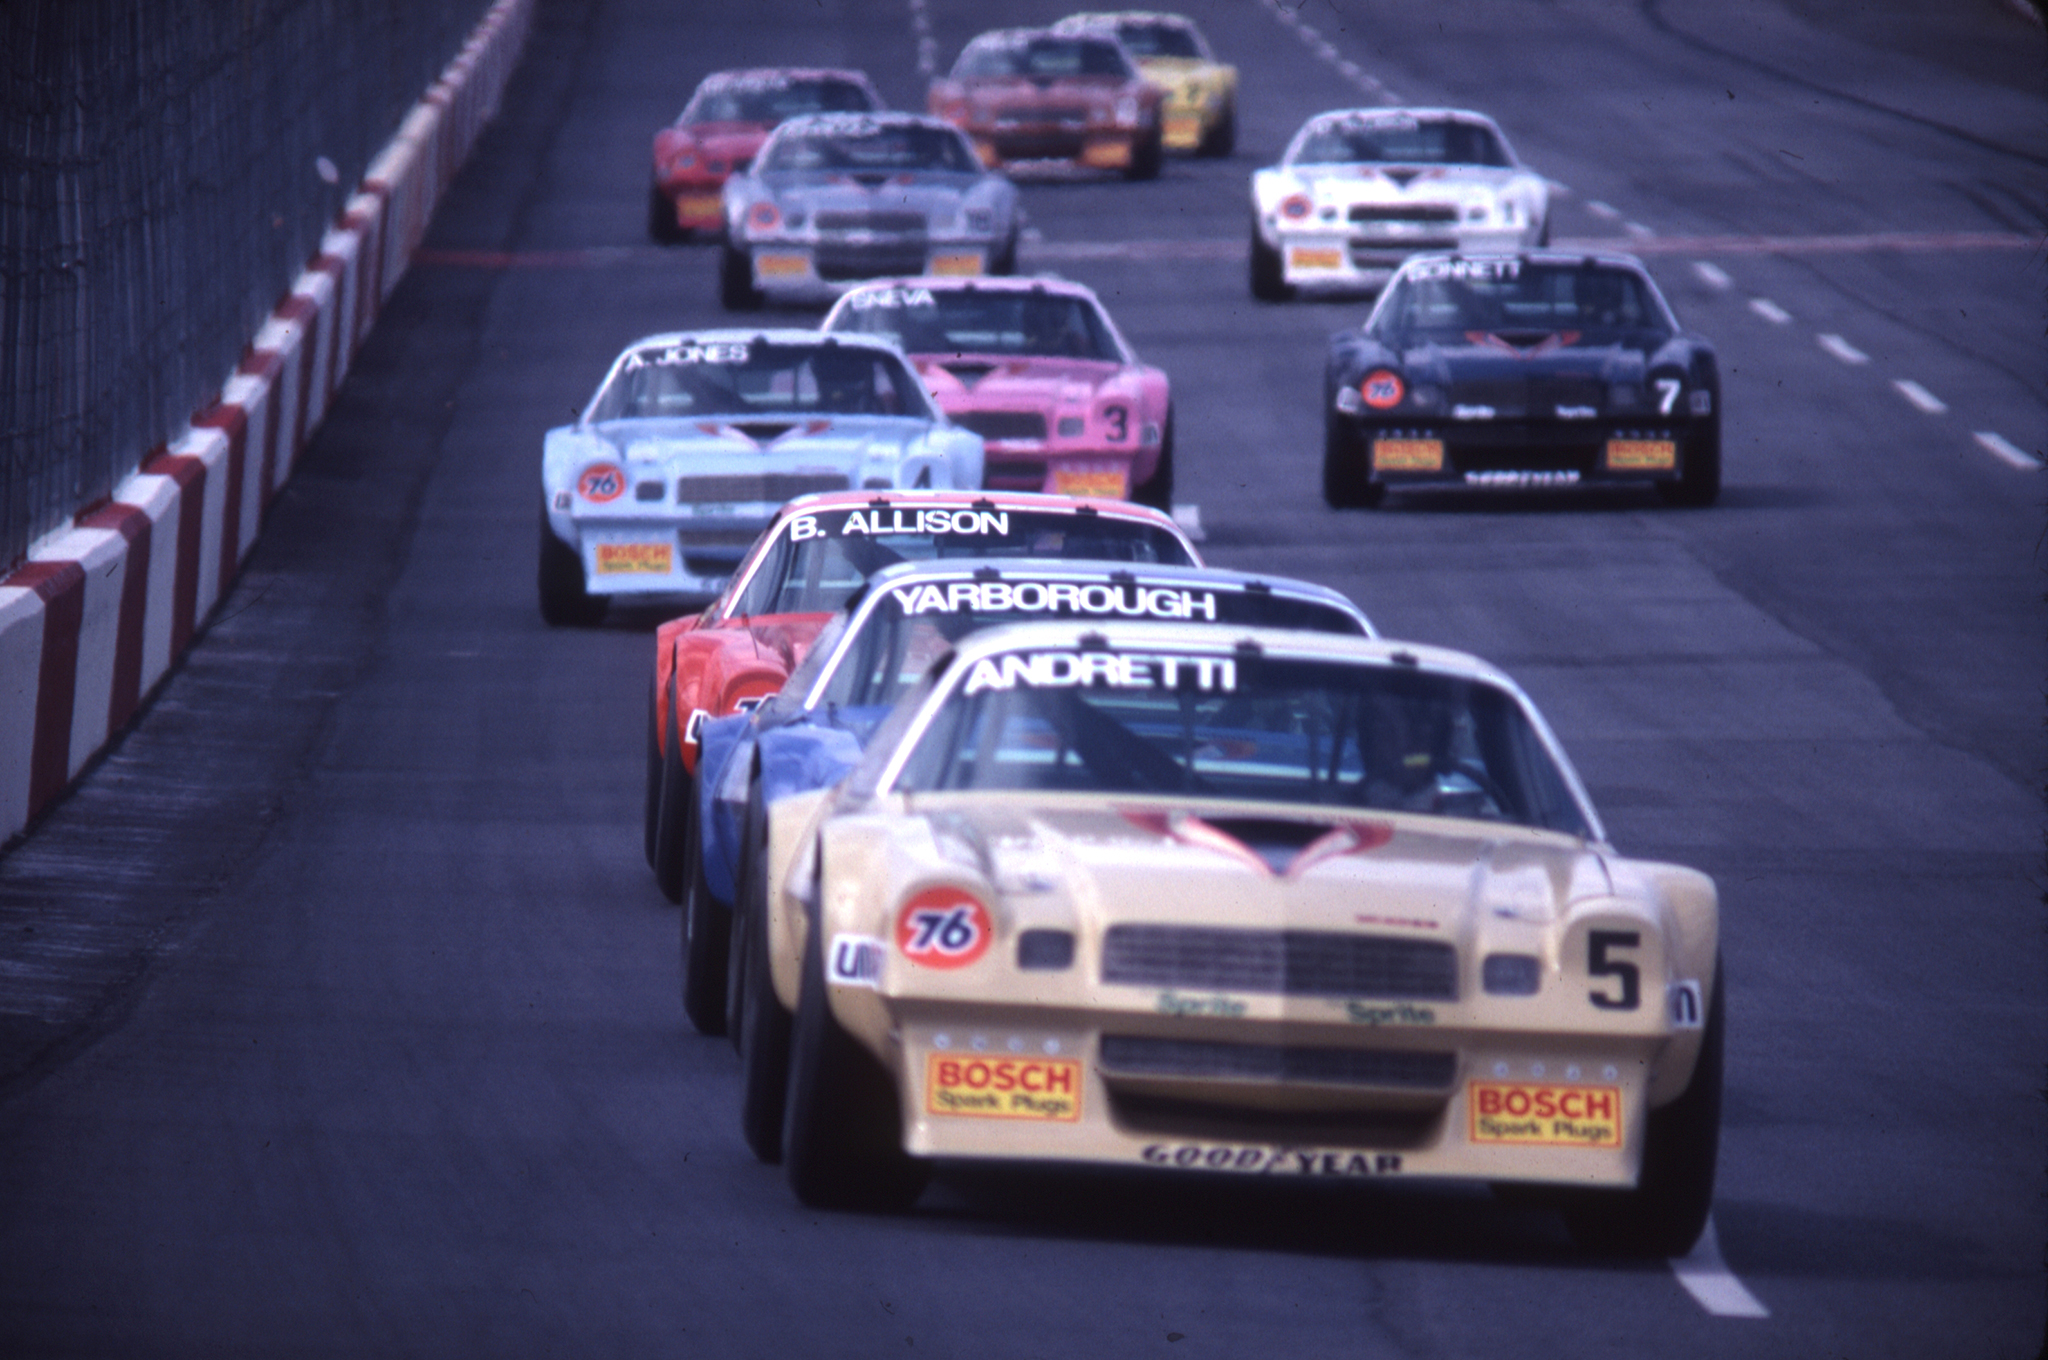 The Camaro was a track star in the IROC racing series from the mid-1970s through late-1980s. The series featured identically prepared race cars driven by the best drivers from different forms of racing, from open-wheel and Sprint cars to NASCAR.